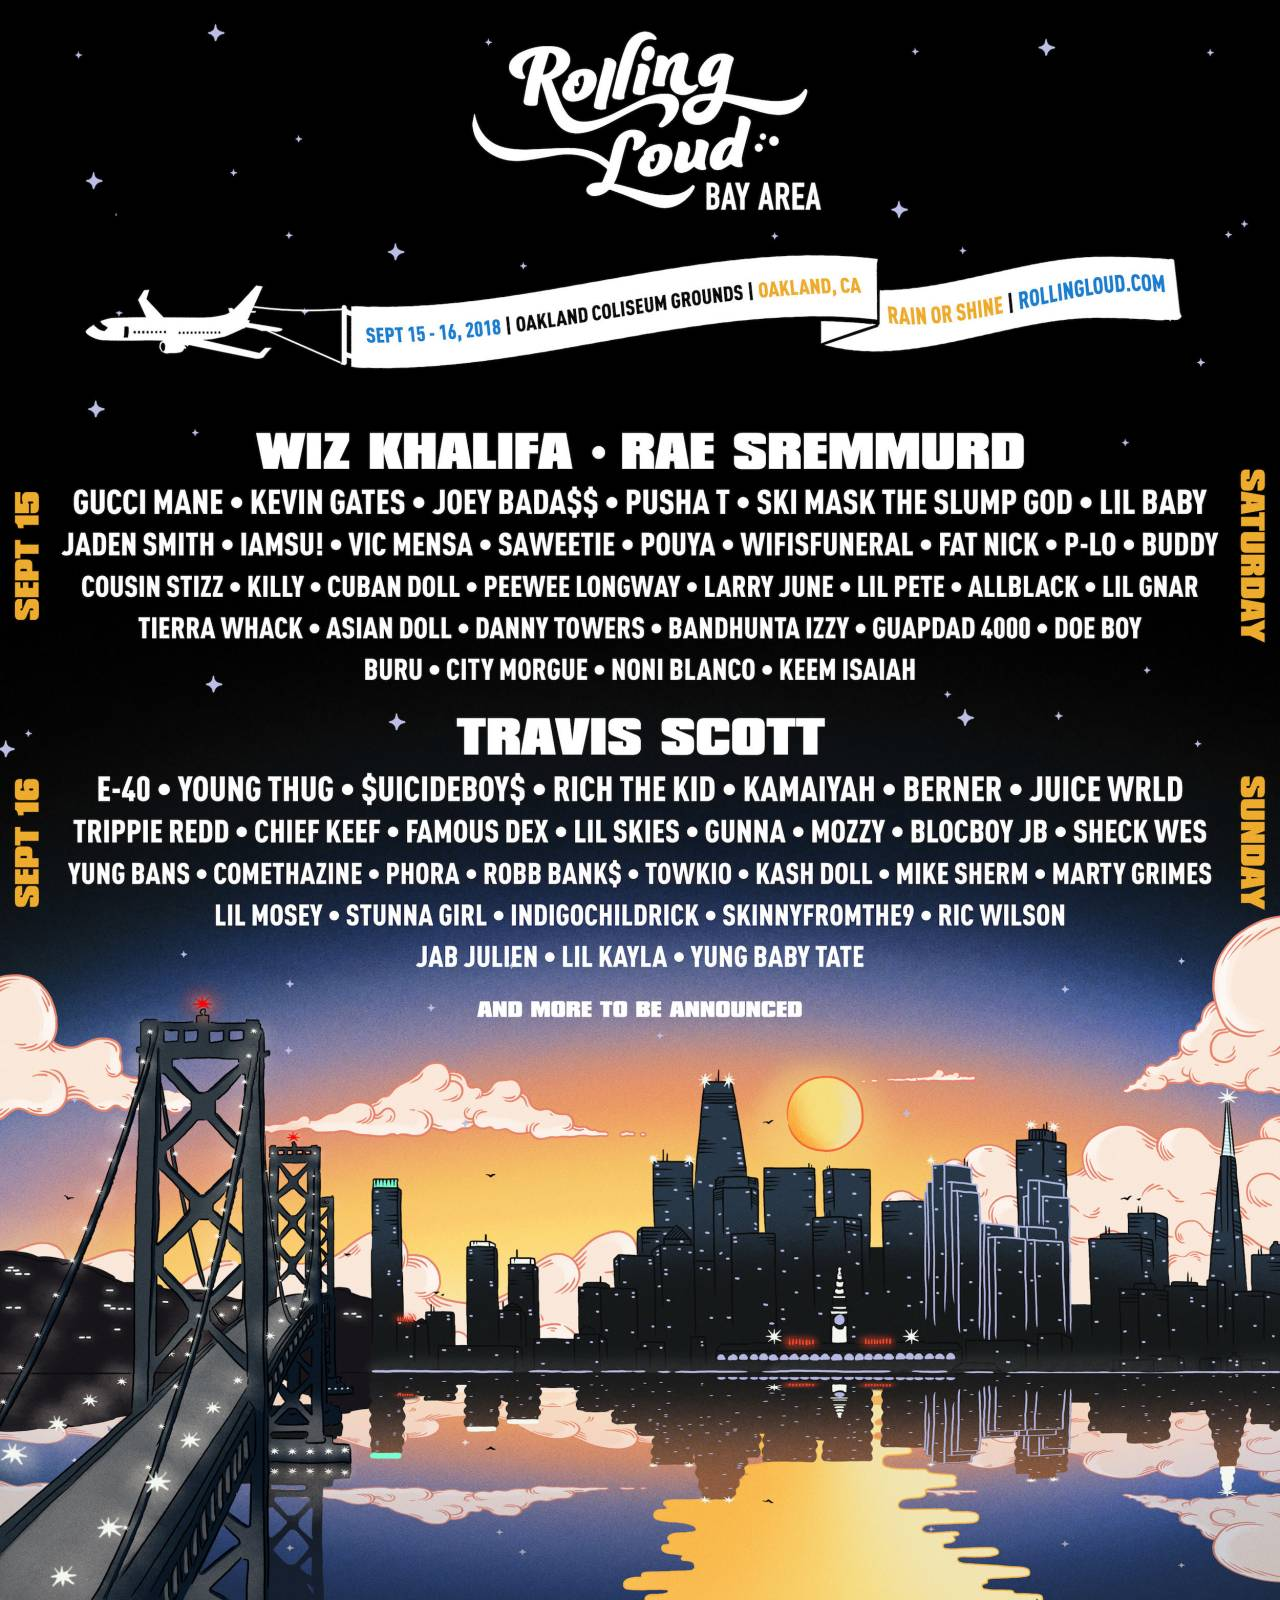 Rolling Loud Announces Bay Area Lineup, Featuring Travis Scott, Wiz Khalifa, Pusha T, Kevin Gates, and More [Events]